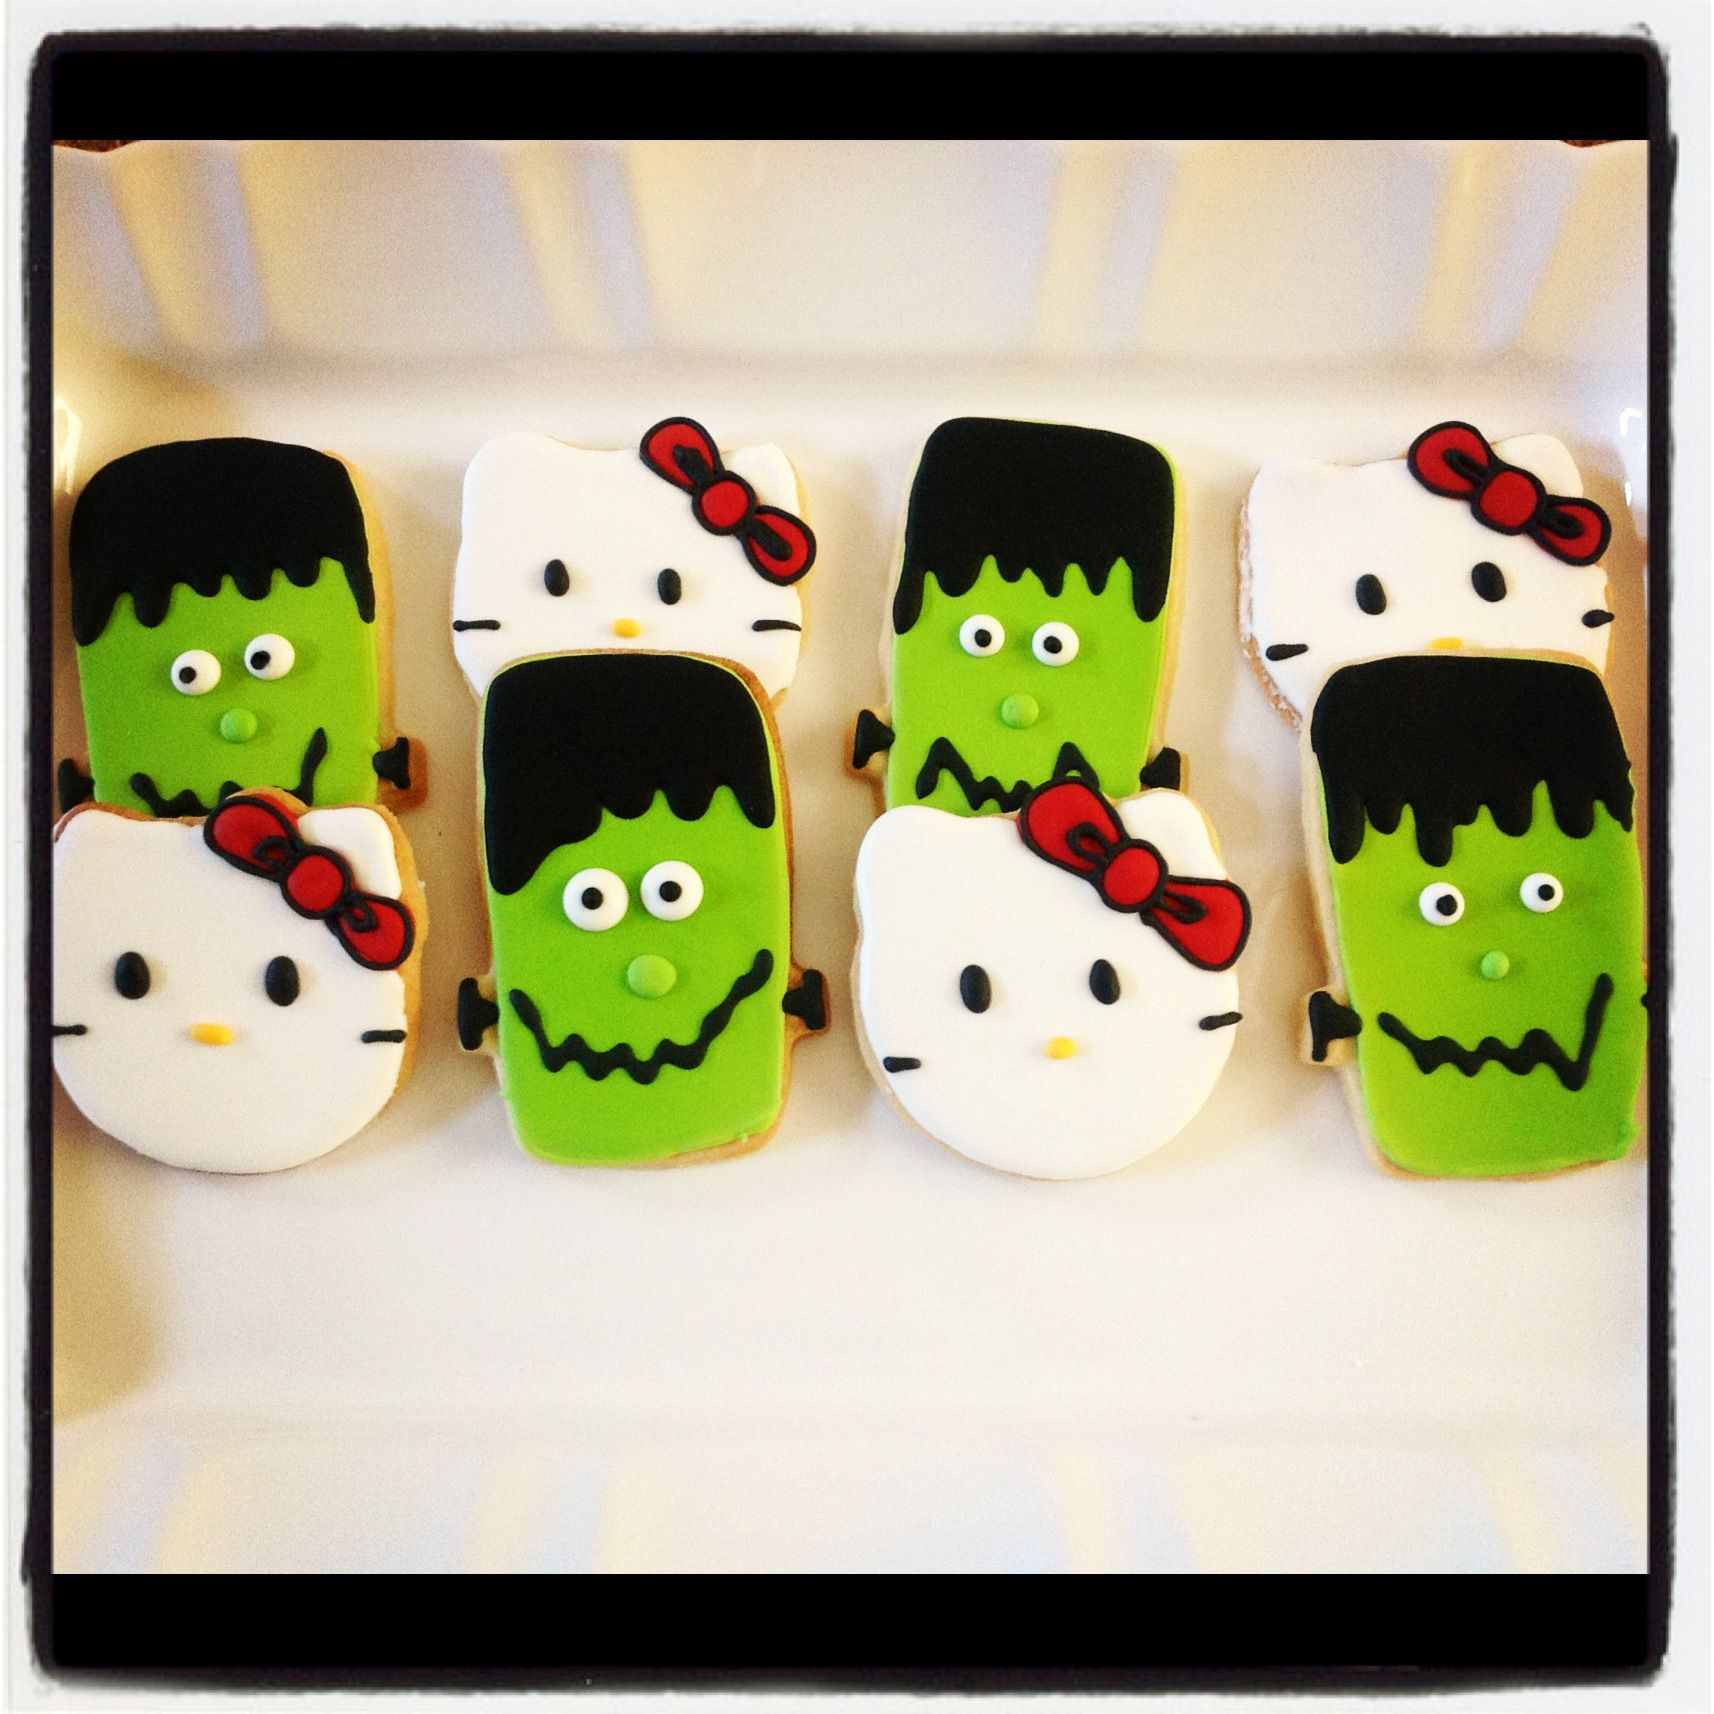 Frankenstein and hello kitty cookies